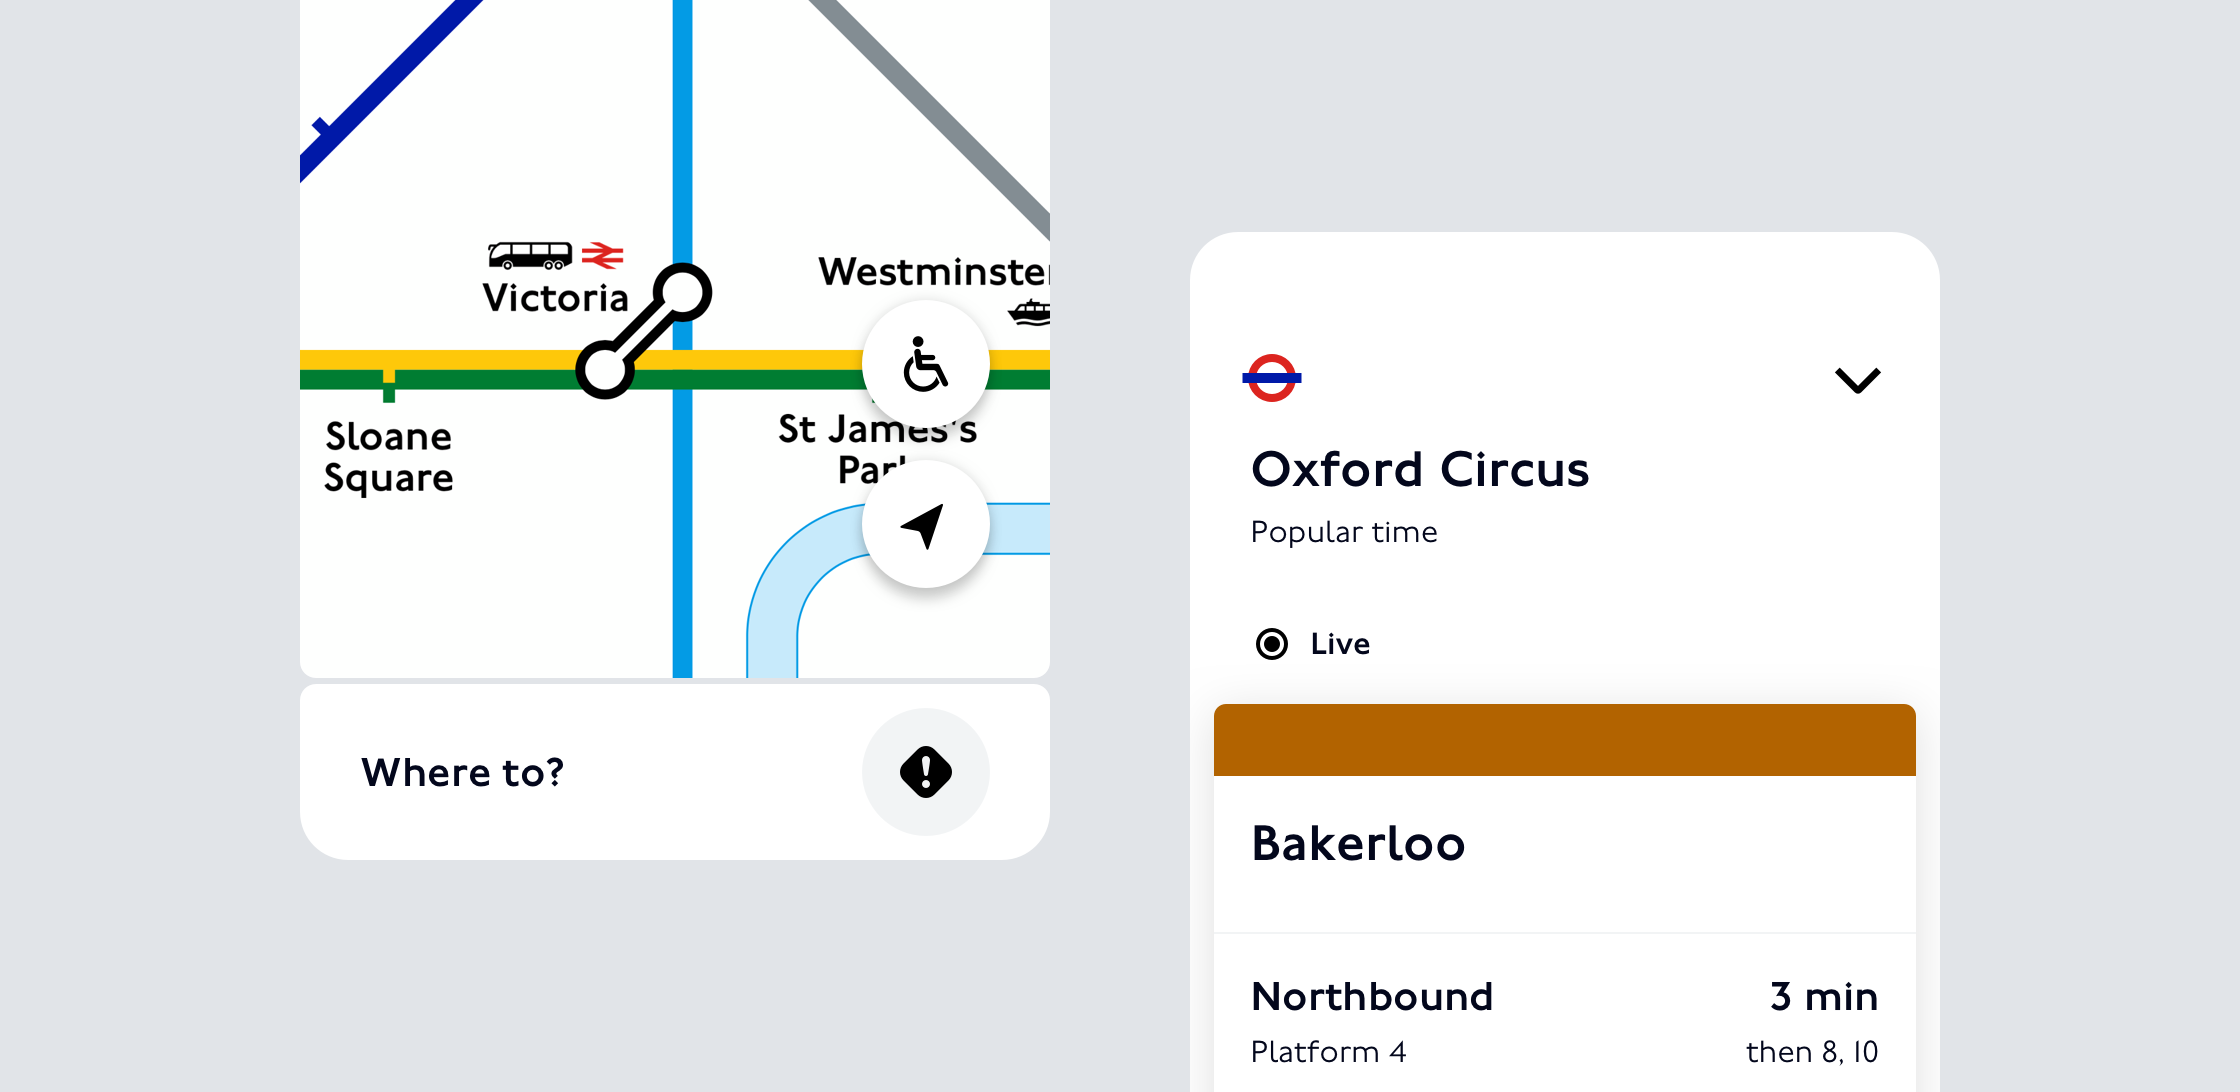 An image of TfL Go, showing Oxford Circus and the live digital Tube map